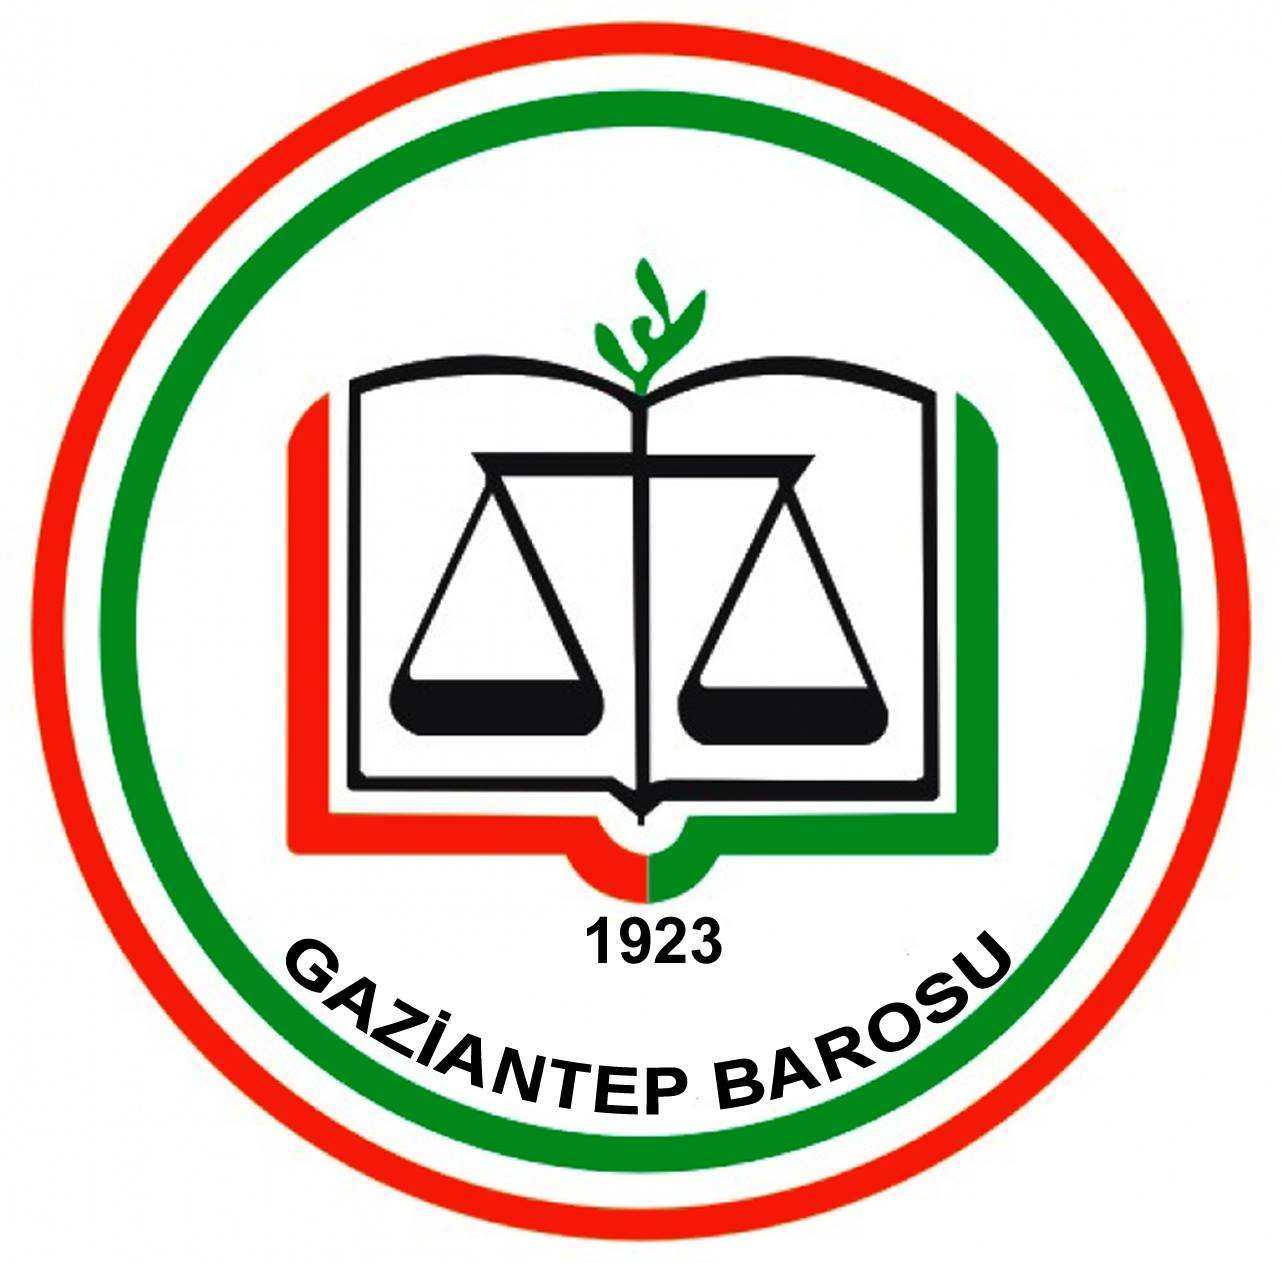 Gaziantep Barosu -  Gaziantep Bar Association Child Rights Center